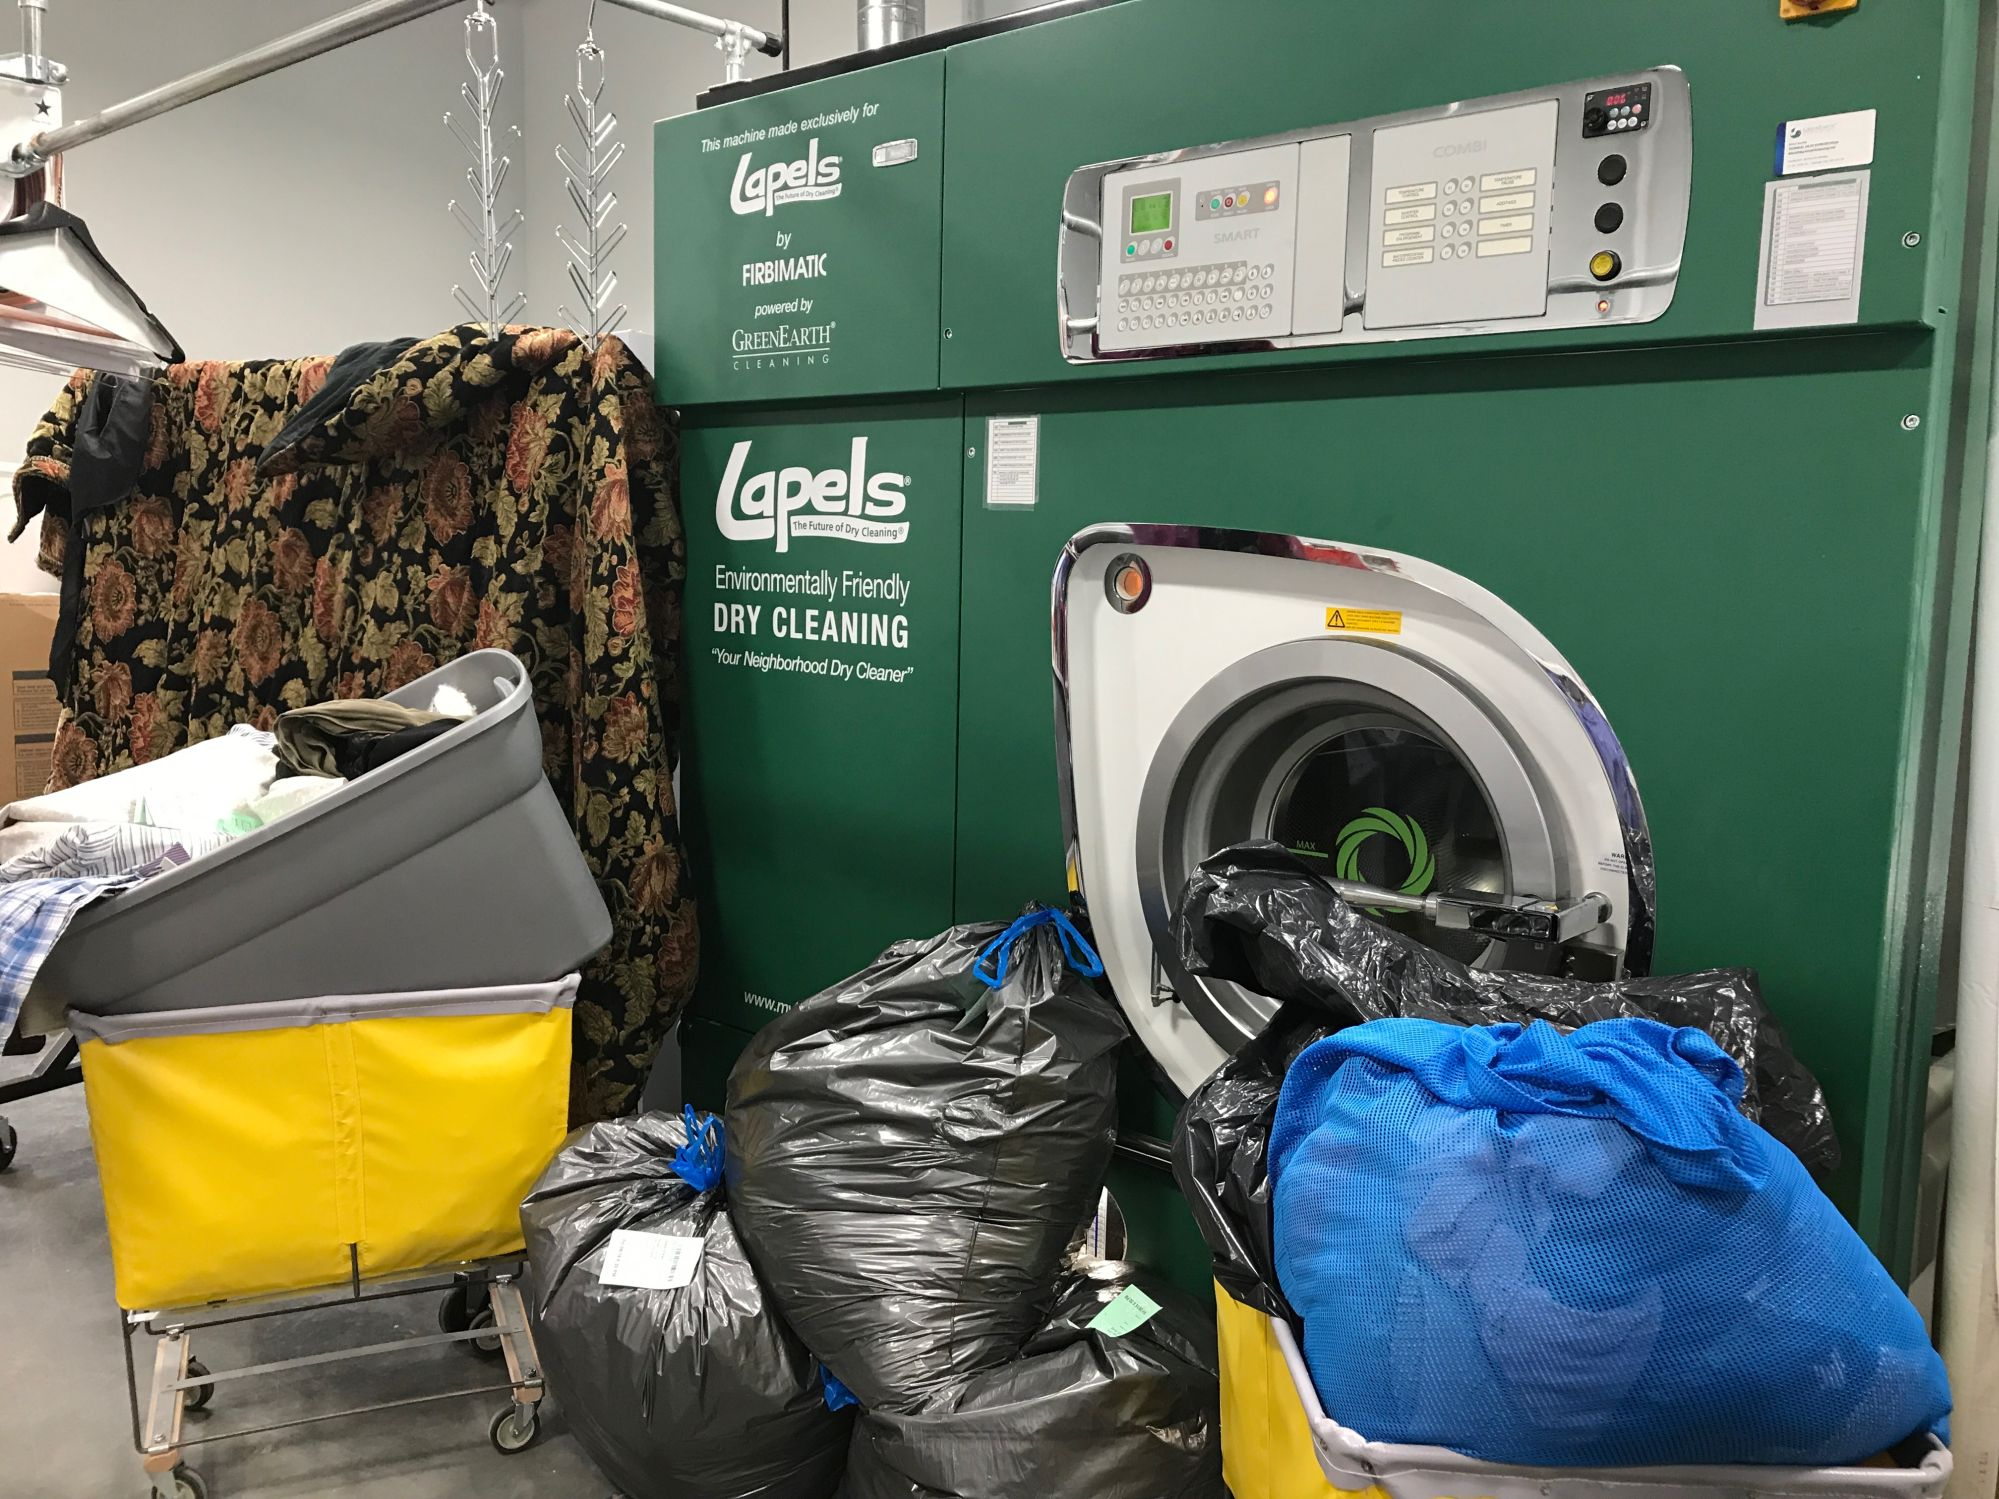 Lapels Dry Cleaning of Katy helps Harvey victims get off to a clean start